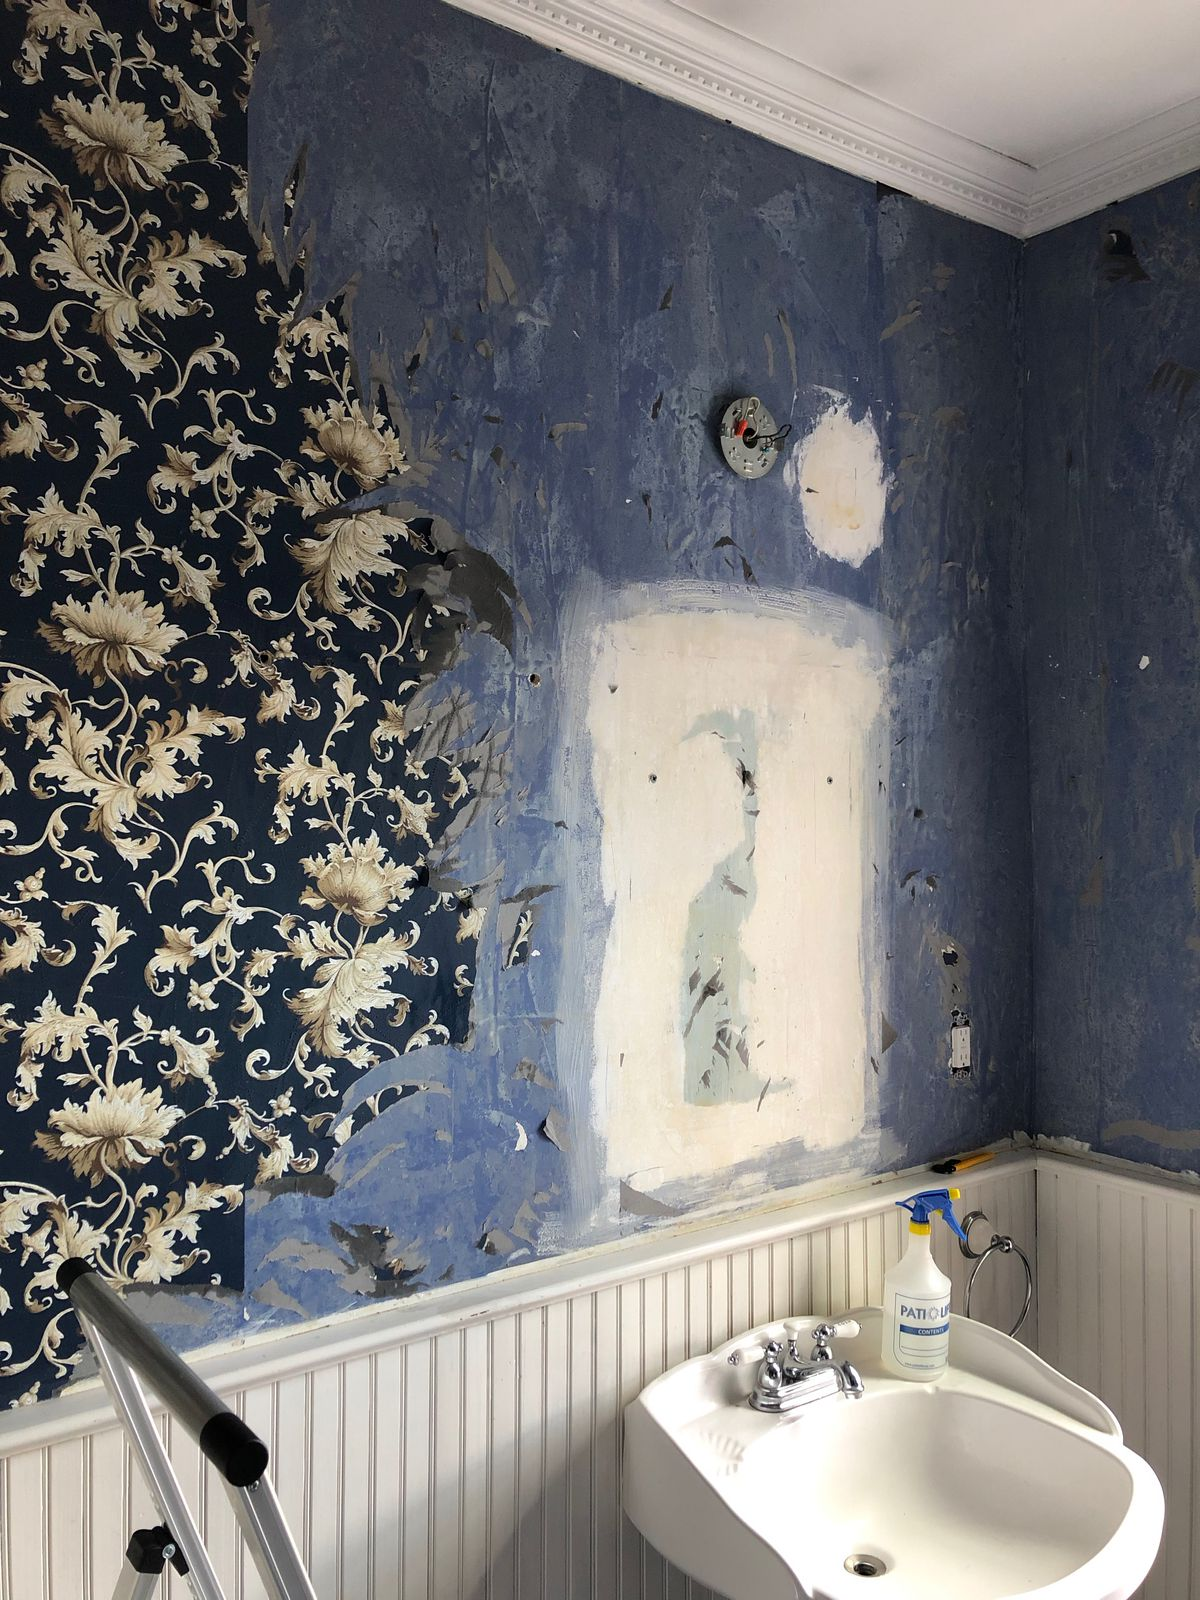 The original painted blue wall in the bathroom is on display while the dark patterned wallpaper is being removed.